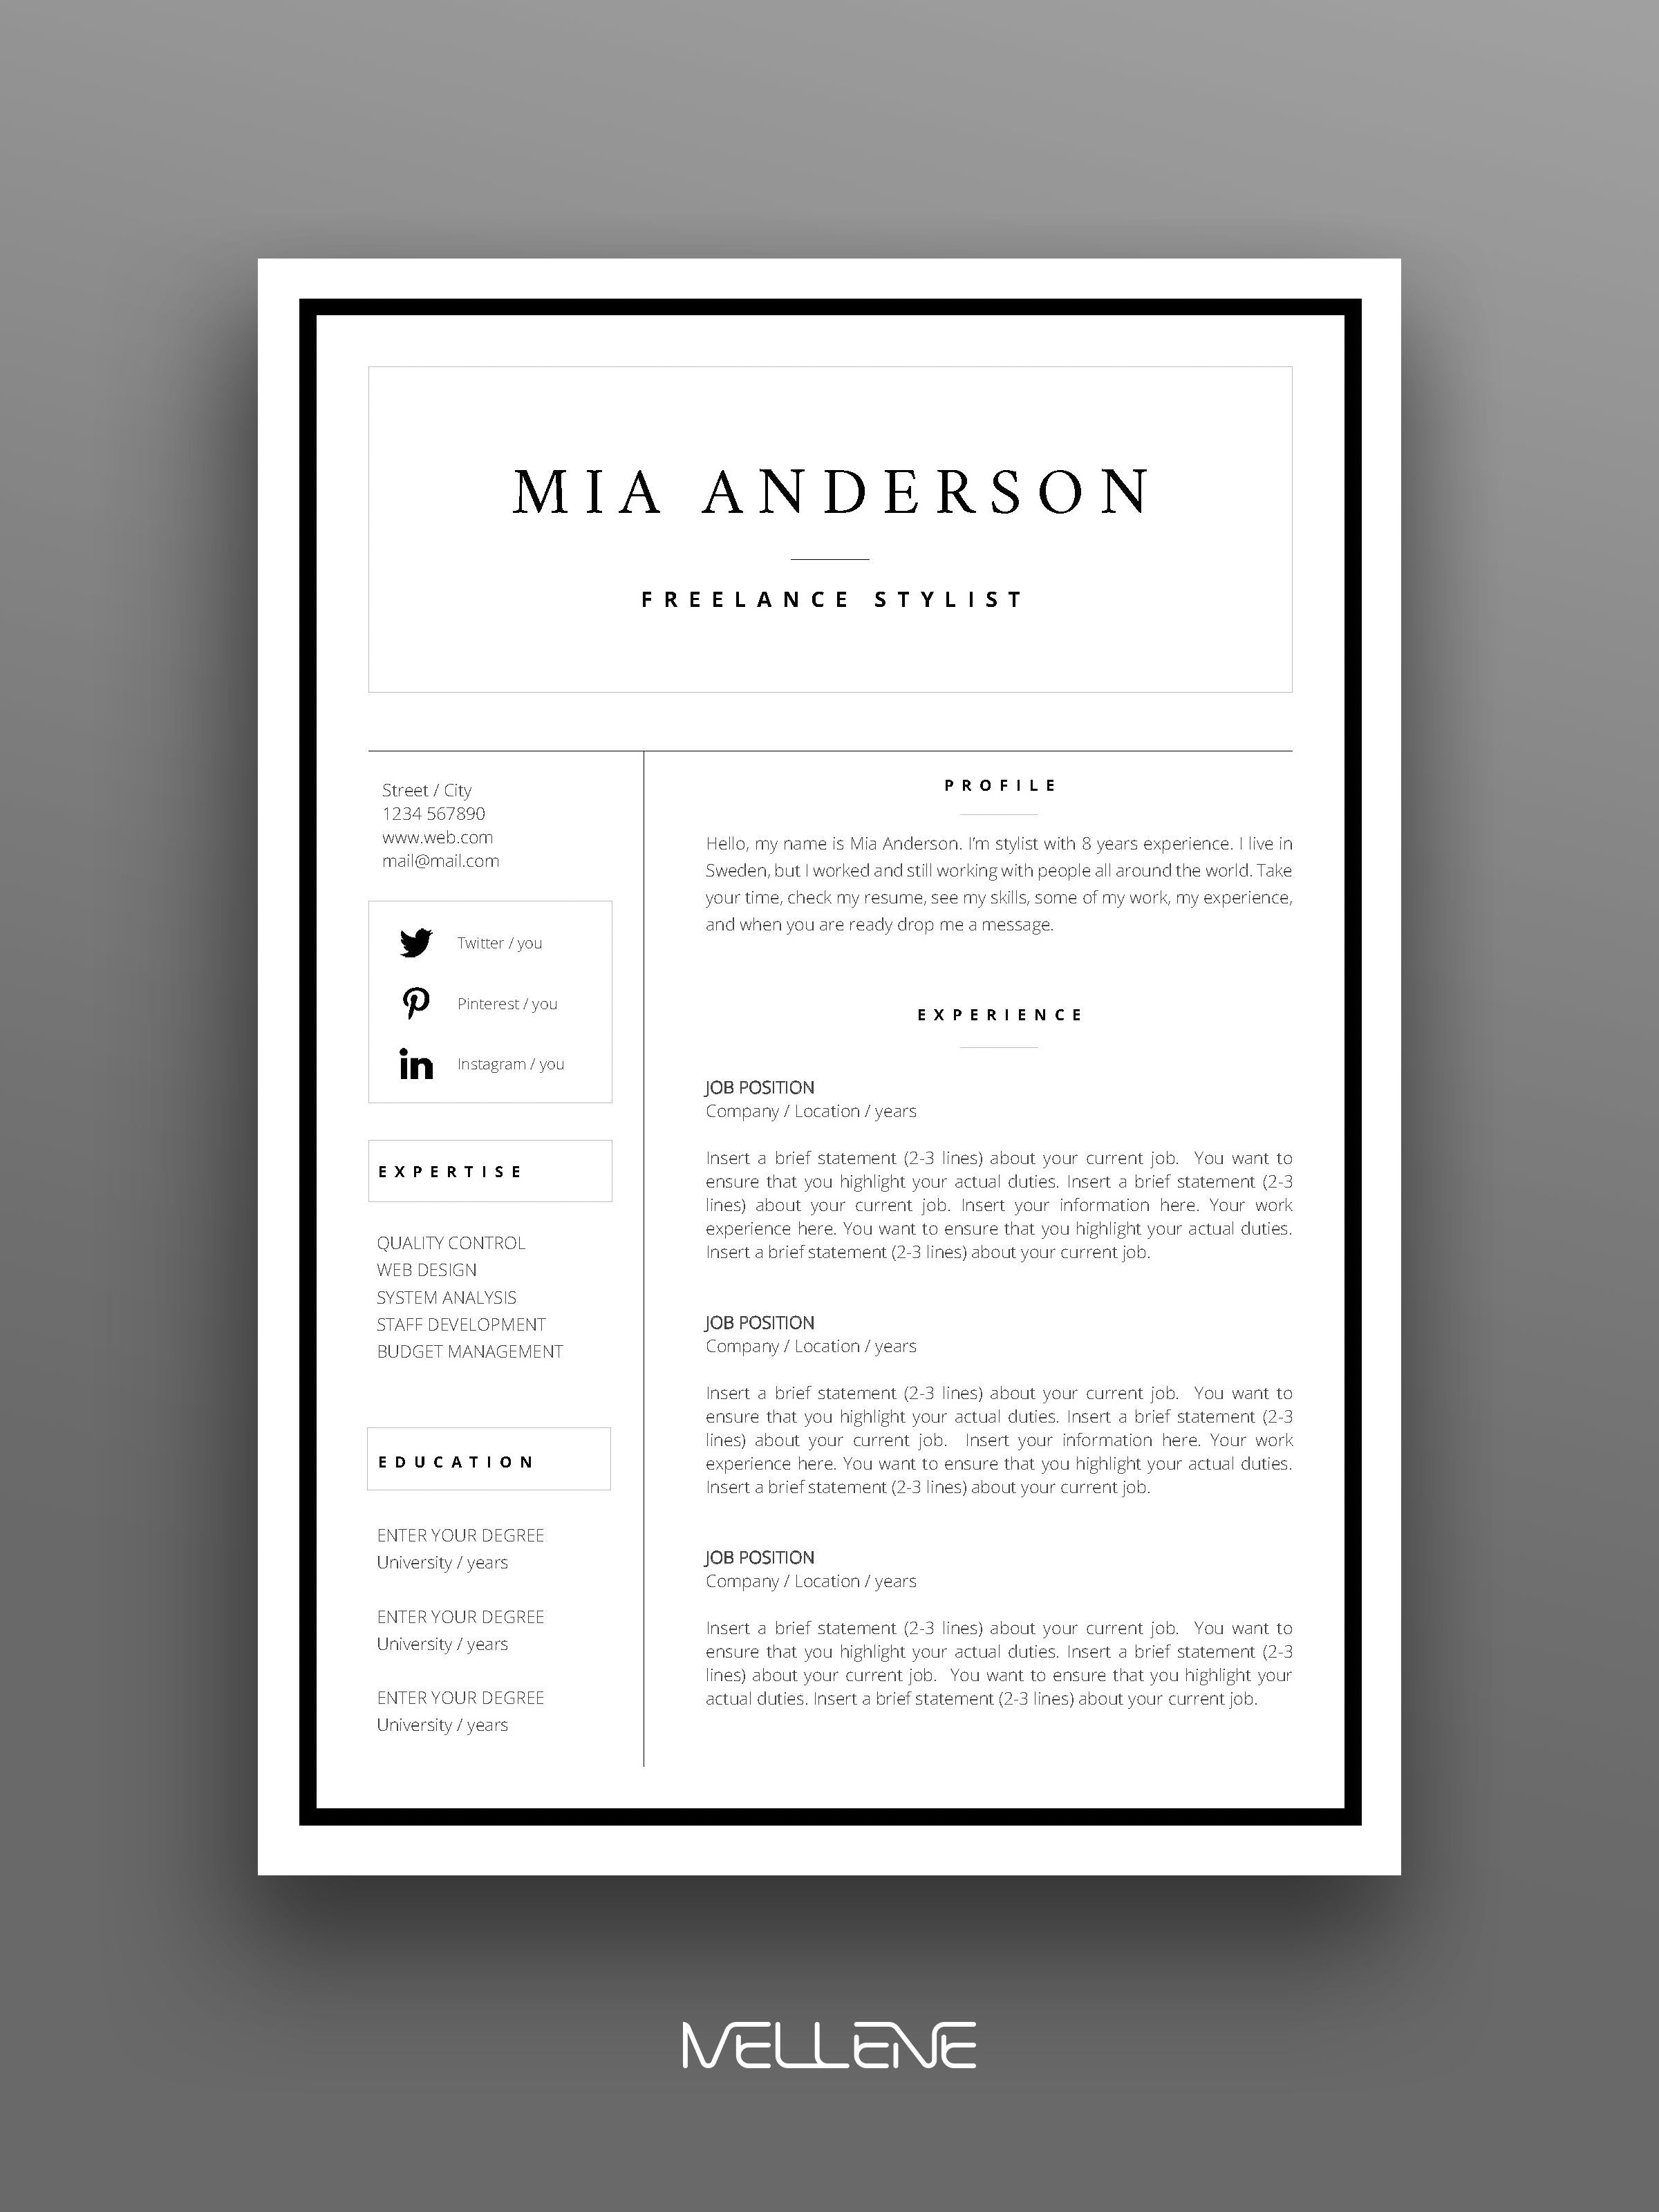 2 Page Resume Cv Design Cover Letter Free Icons And Usage Manual Professional Creative Layout Resume Design Free Personal Branding Design Resume Design